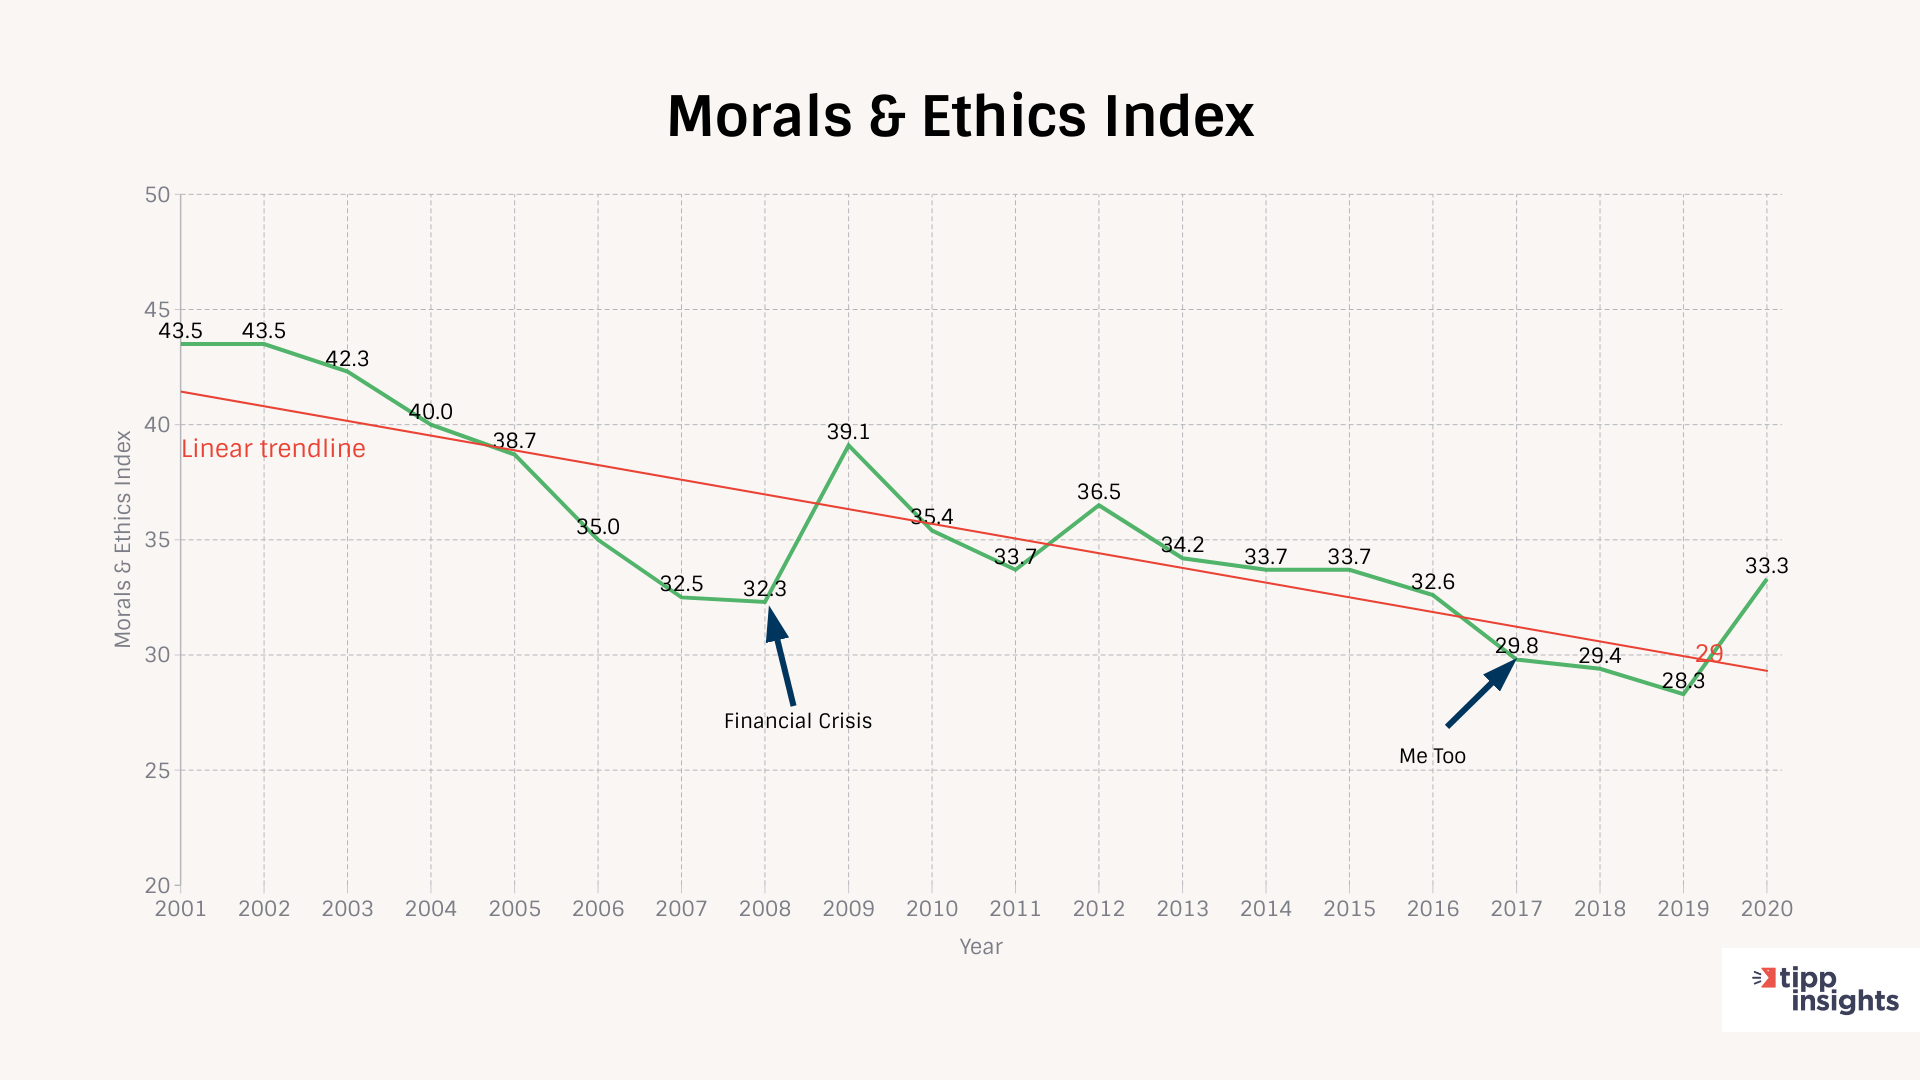 TIPP Poll Results for Morals And Ethics Index indicating a downward trend